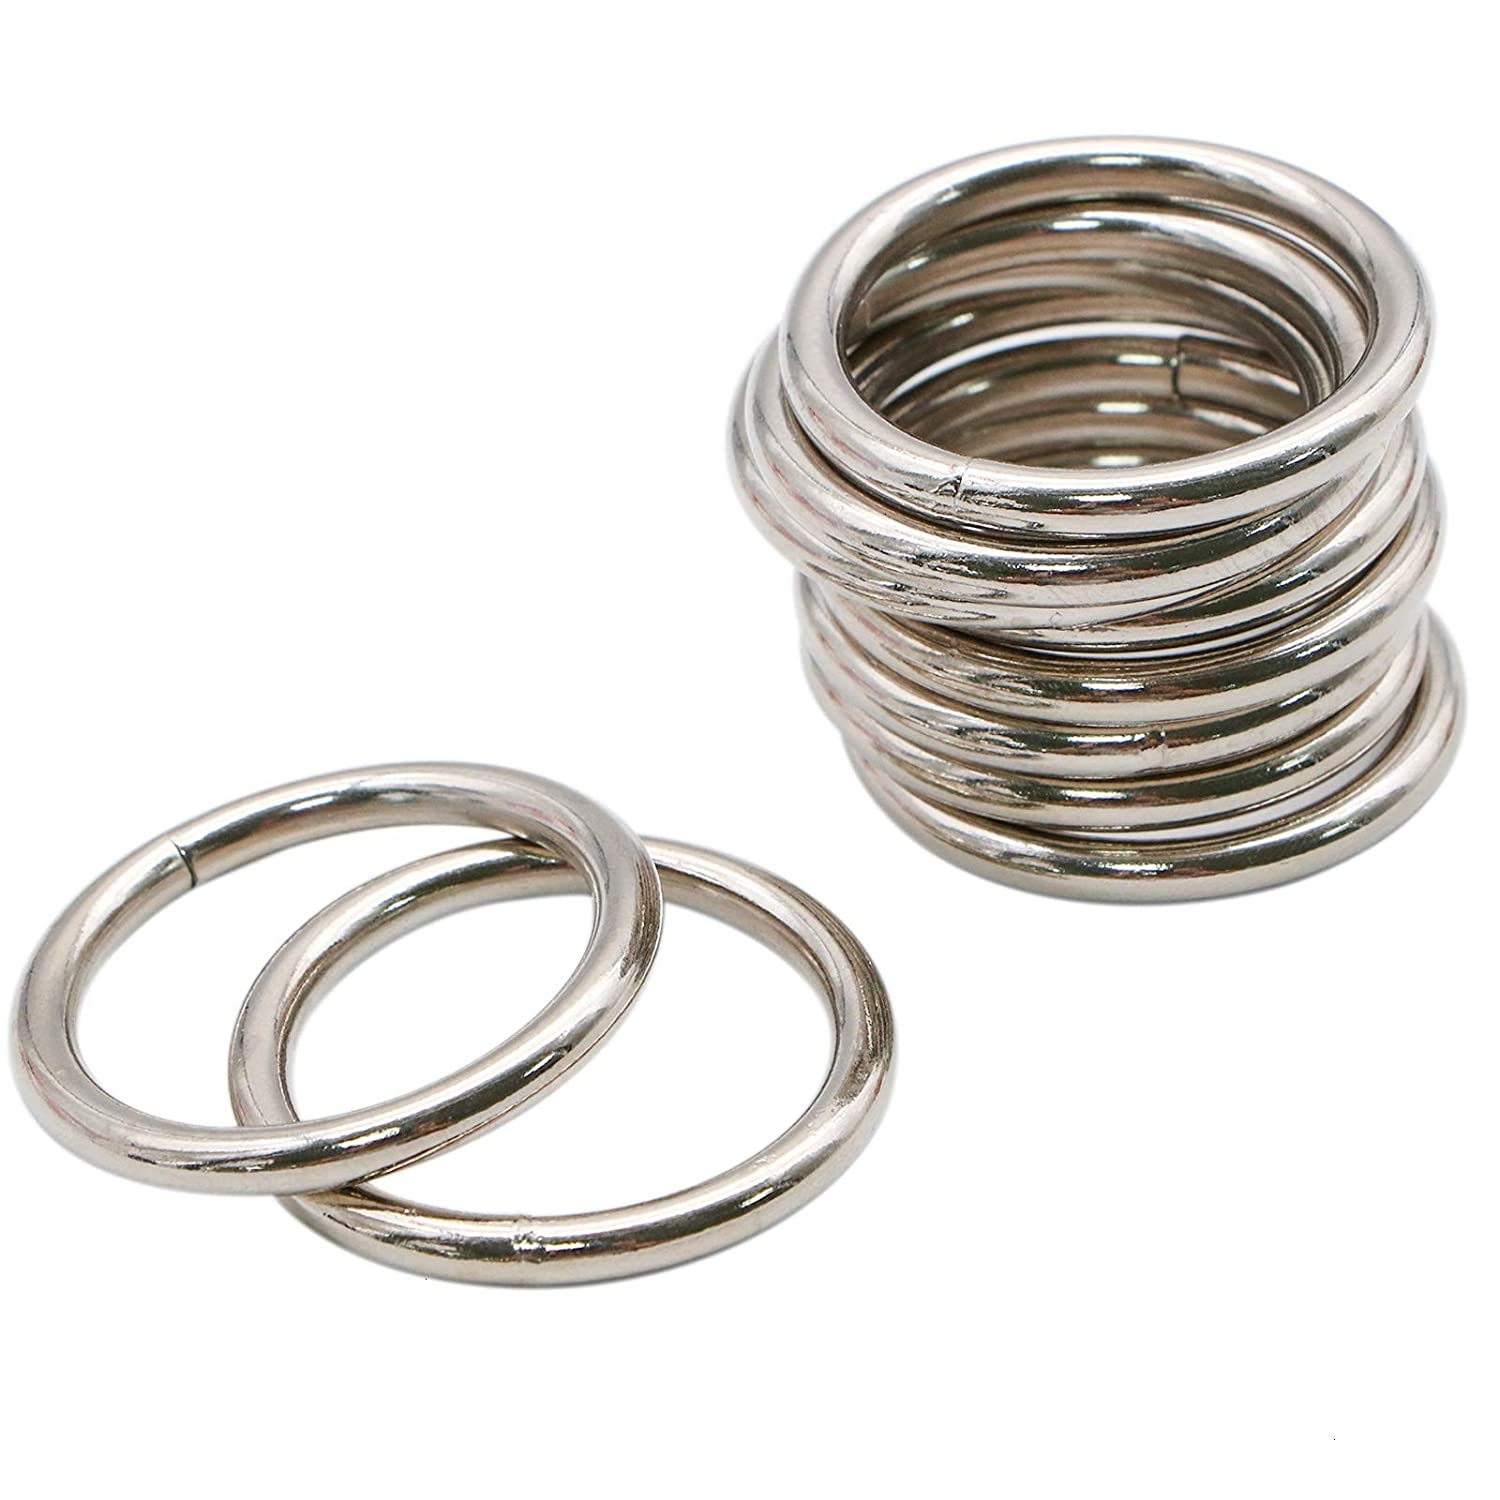 WSSROGY 10-Pack 2' Welded O-Ring Nickel Plate Steel Rings Multi-Purpose Metal O Ring for Macrame, Camping Belt, Dog Leashes, Light Saber Accessories, Luggage Belt, Handbag and More Craft Project